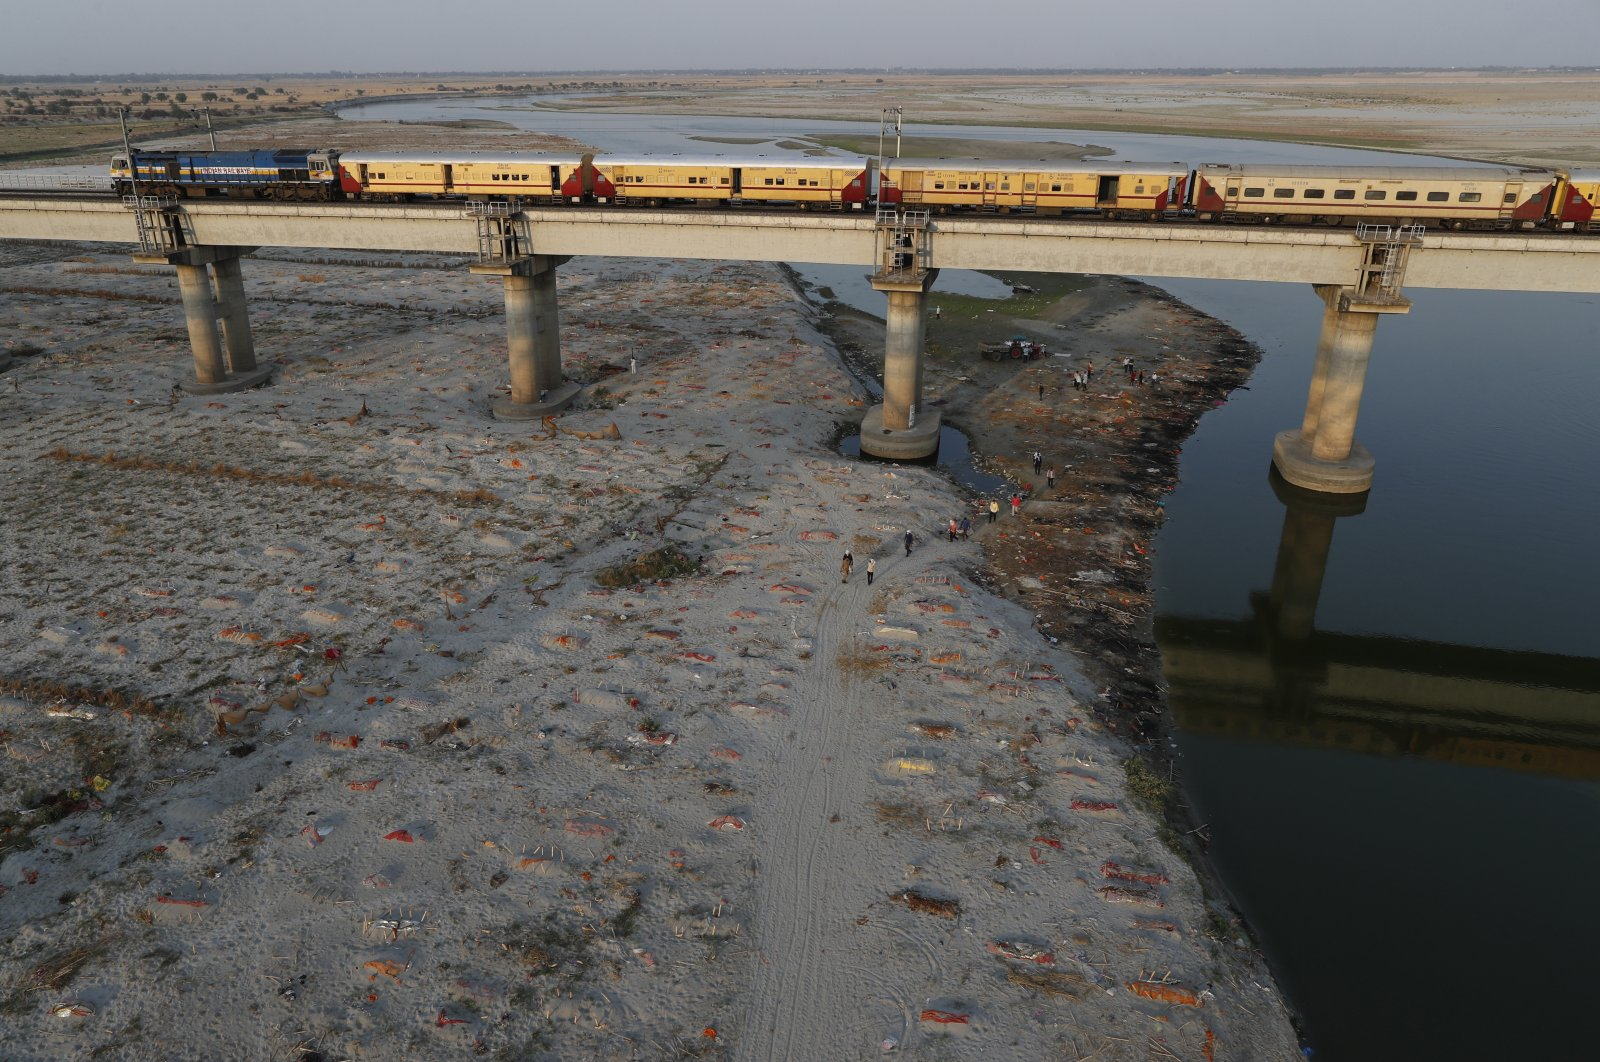 Several bodies are seen buried in shallow graves on the banks of Ganges river in Prayagraj, India. Saturday, May 15, 2021. (AP Photo)